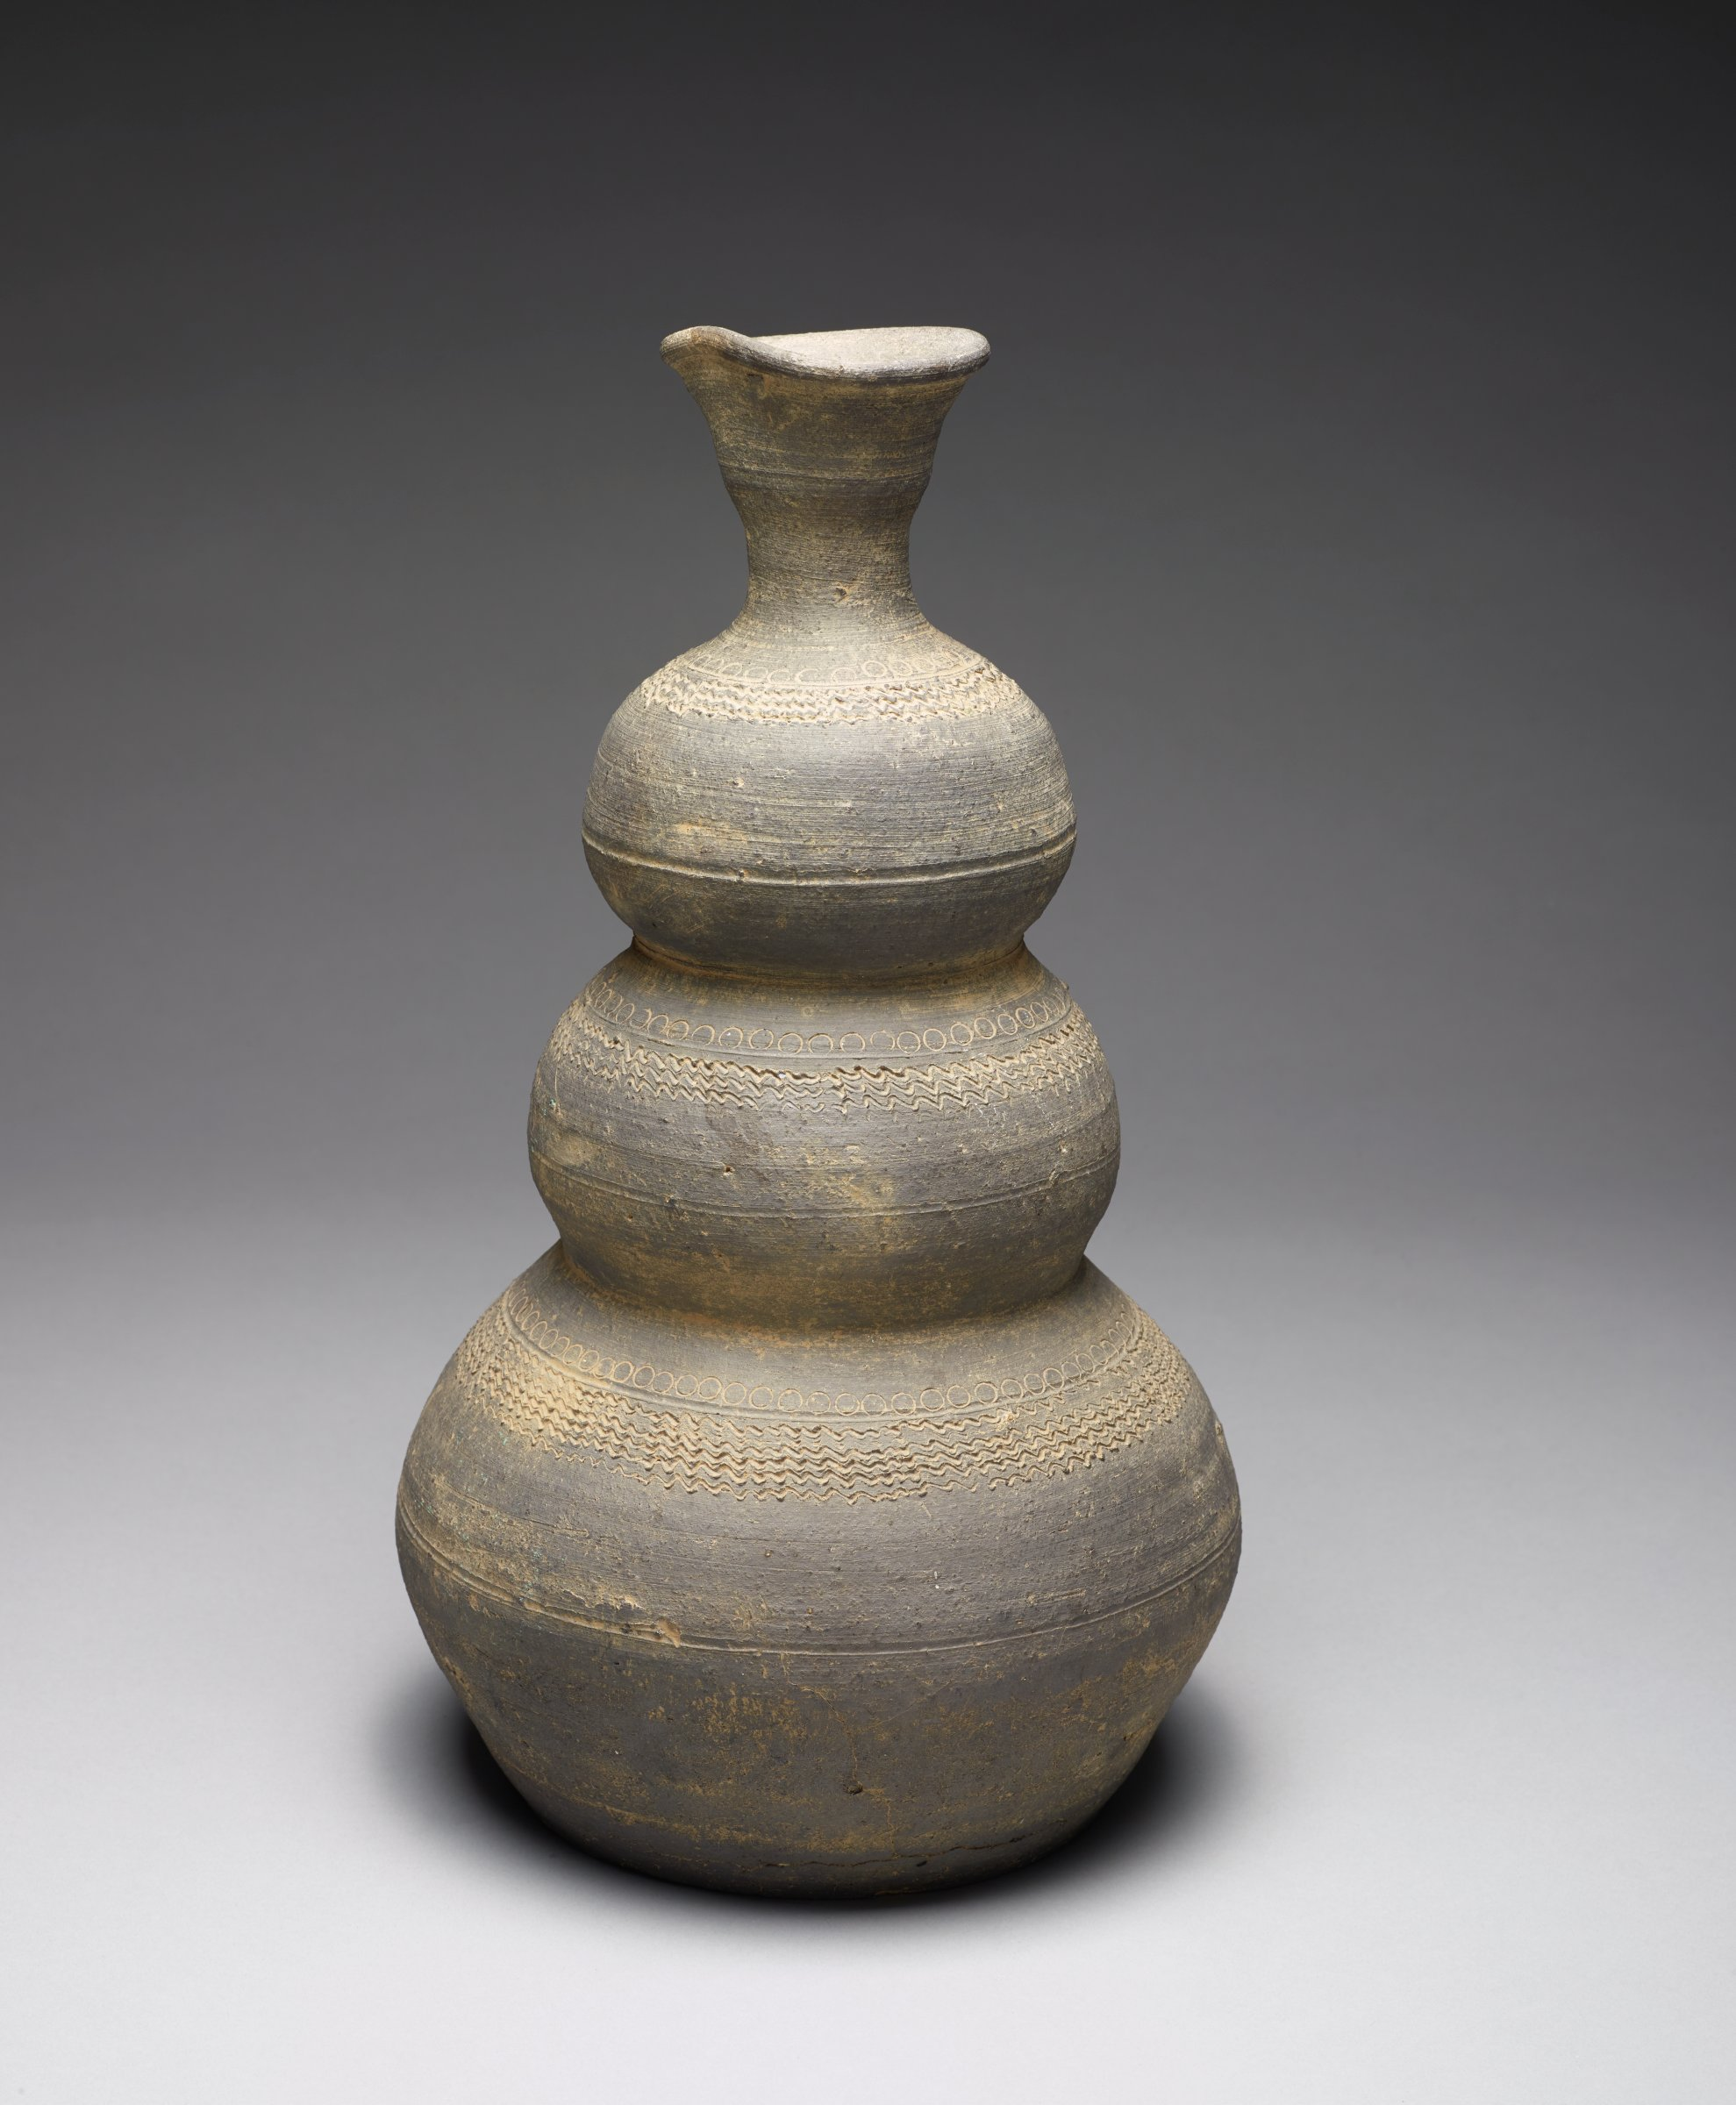 Triple-Gourd Shapled Bottle with Flared Mouth, Stamped Circles and Carved Wave MotifsThickly potted; closely related to 1983.126